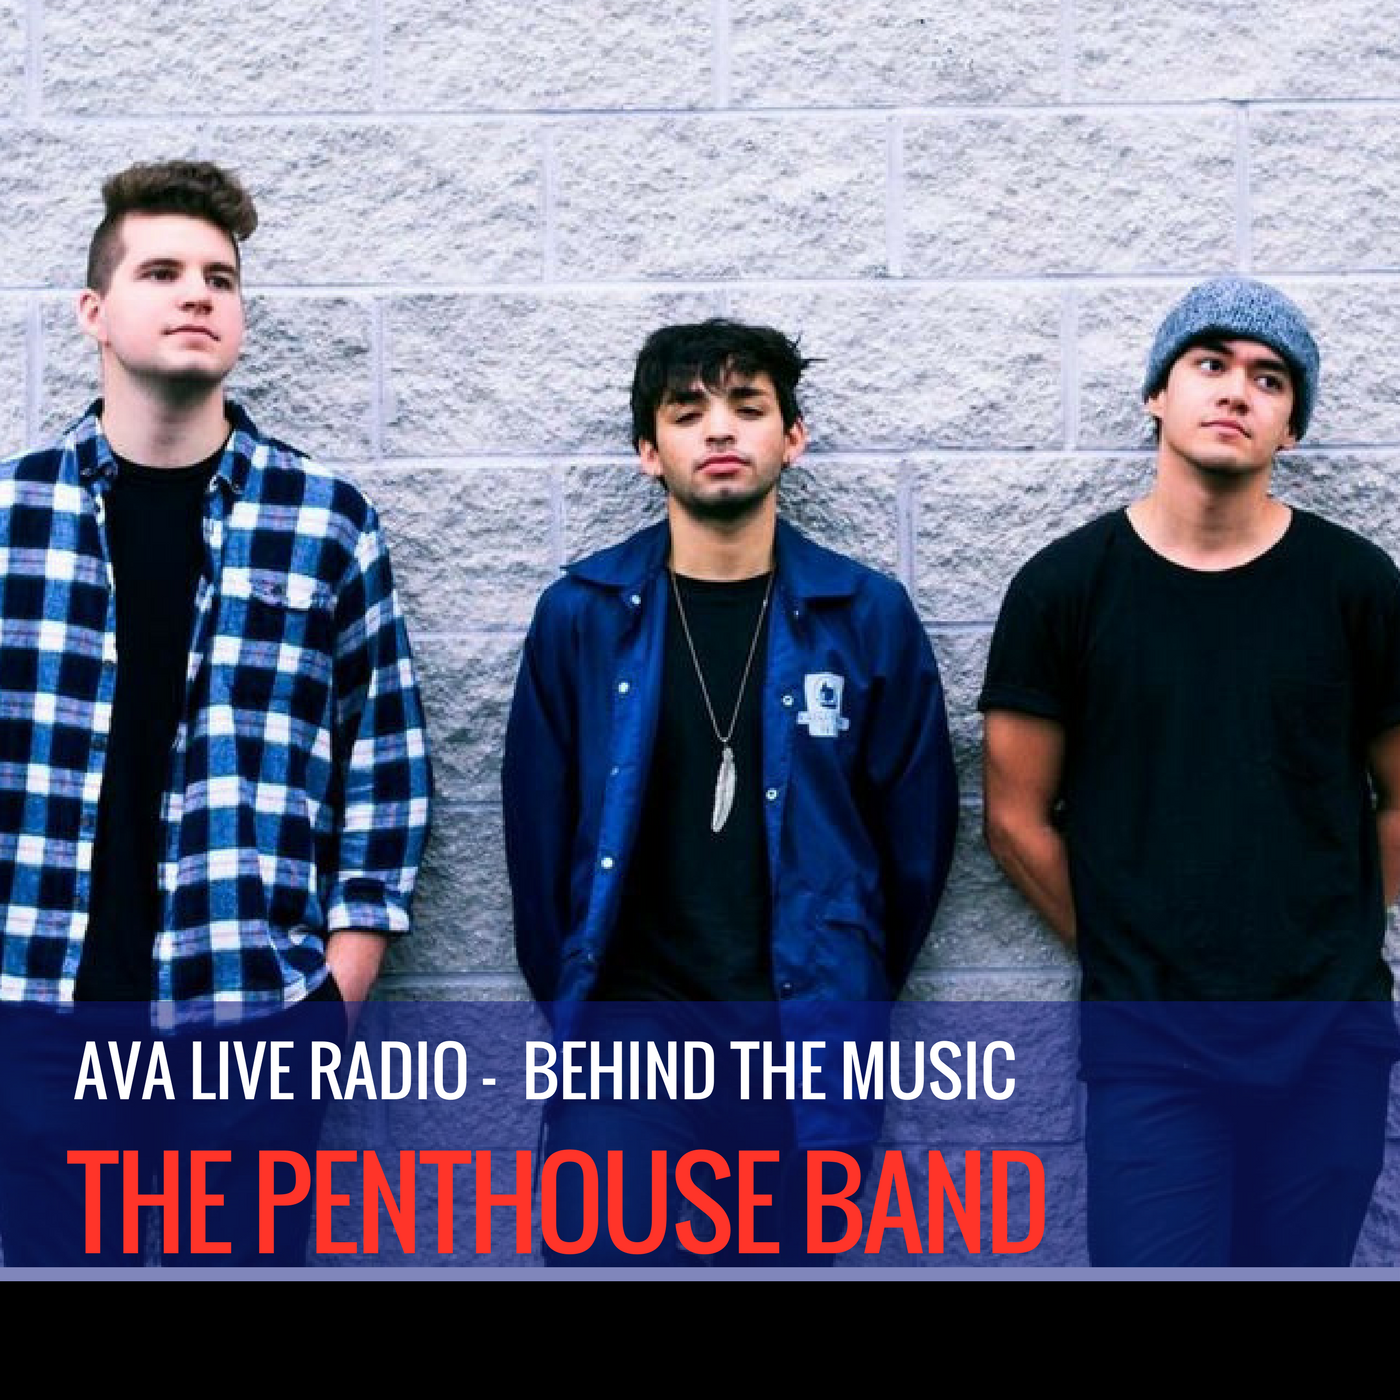 Behind the Music with The Penthouse Band on Clouds